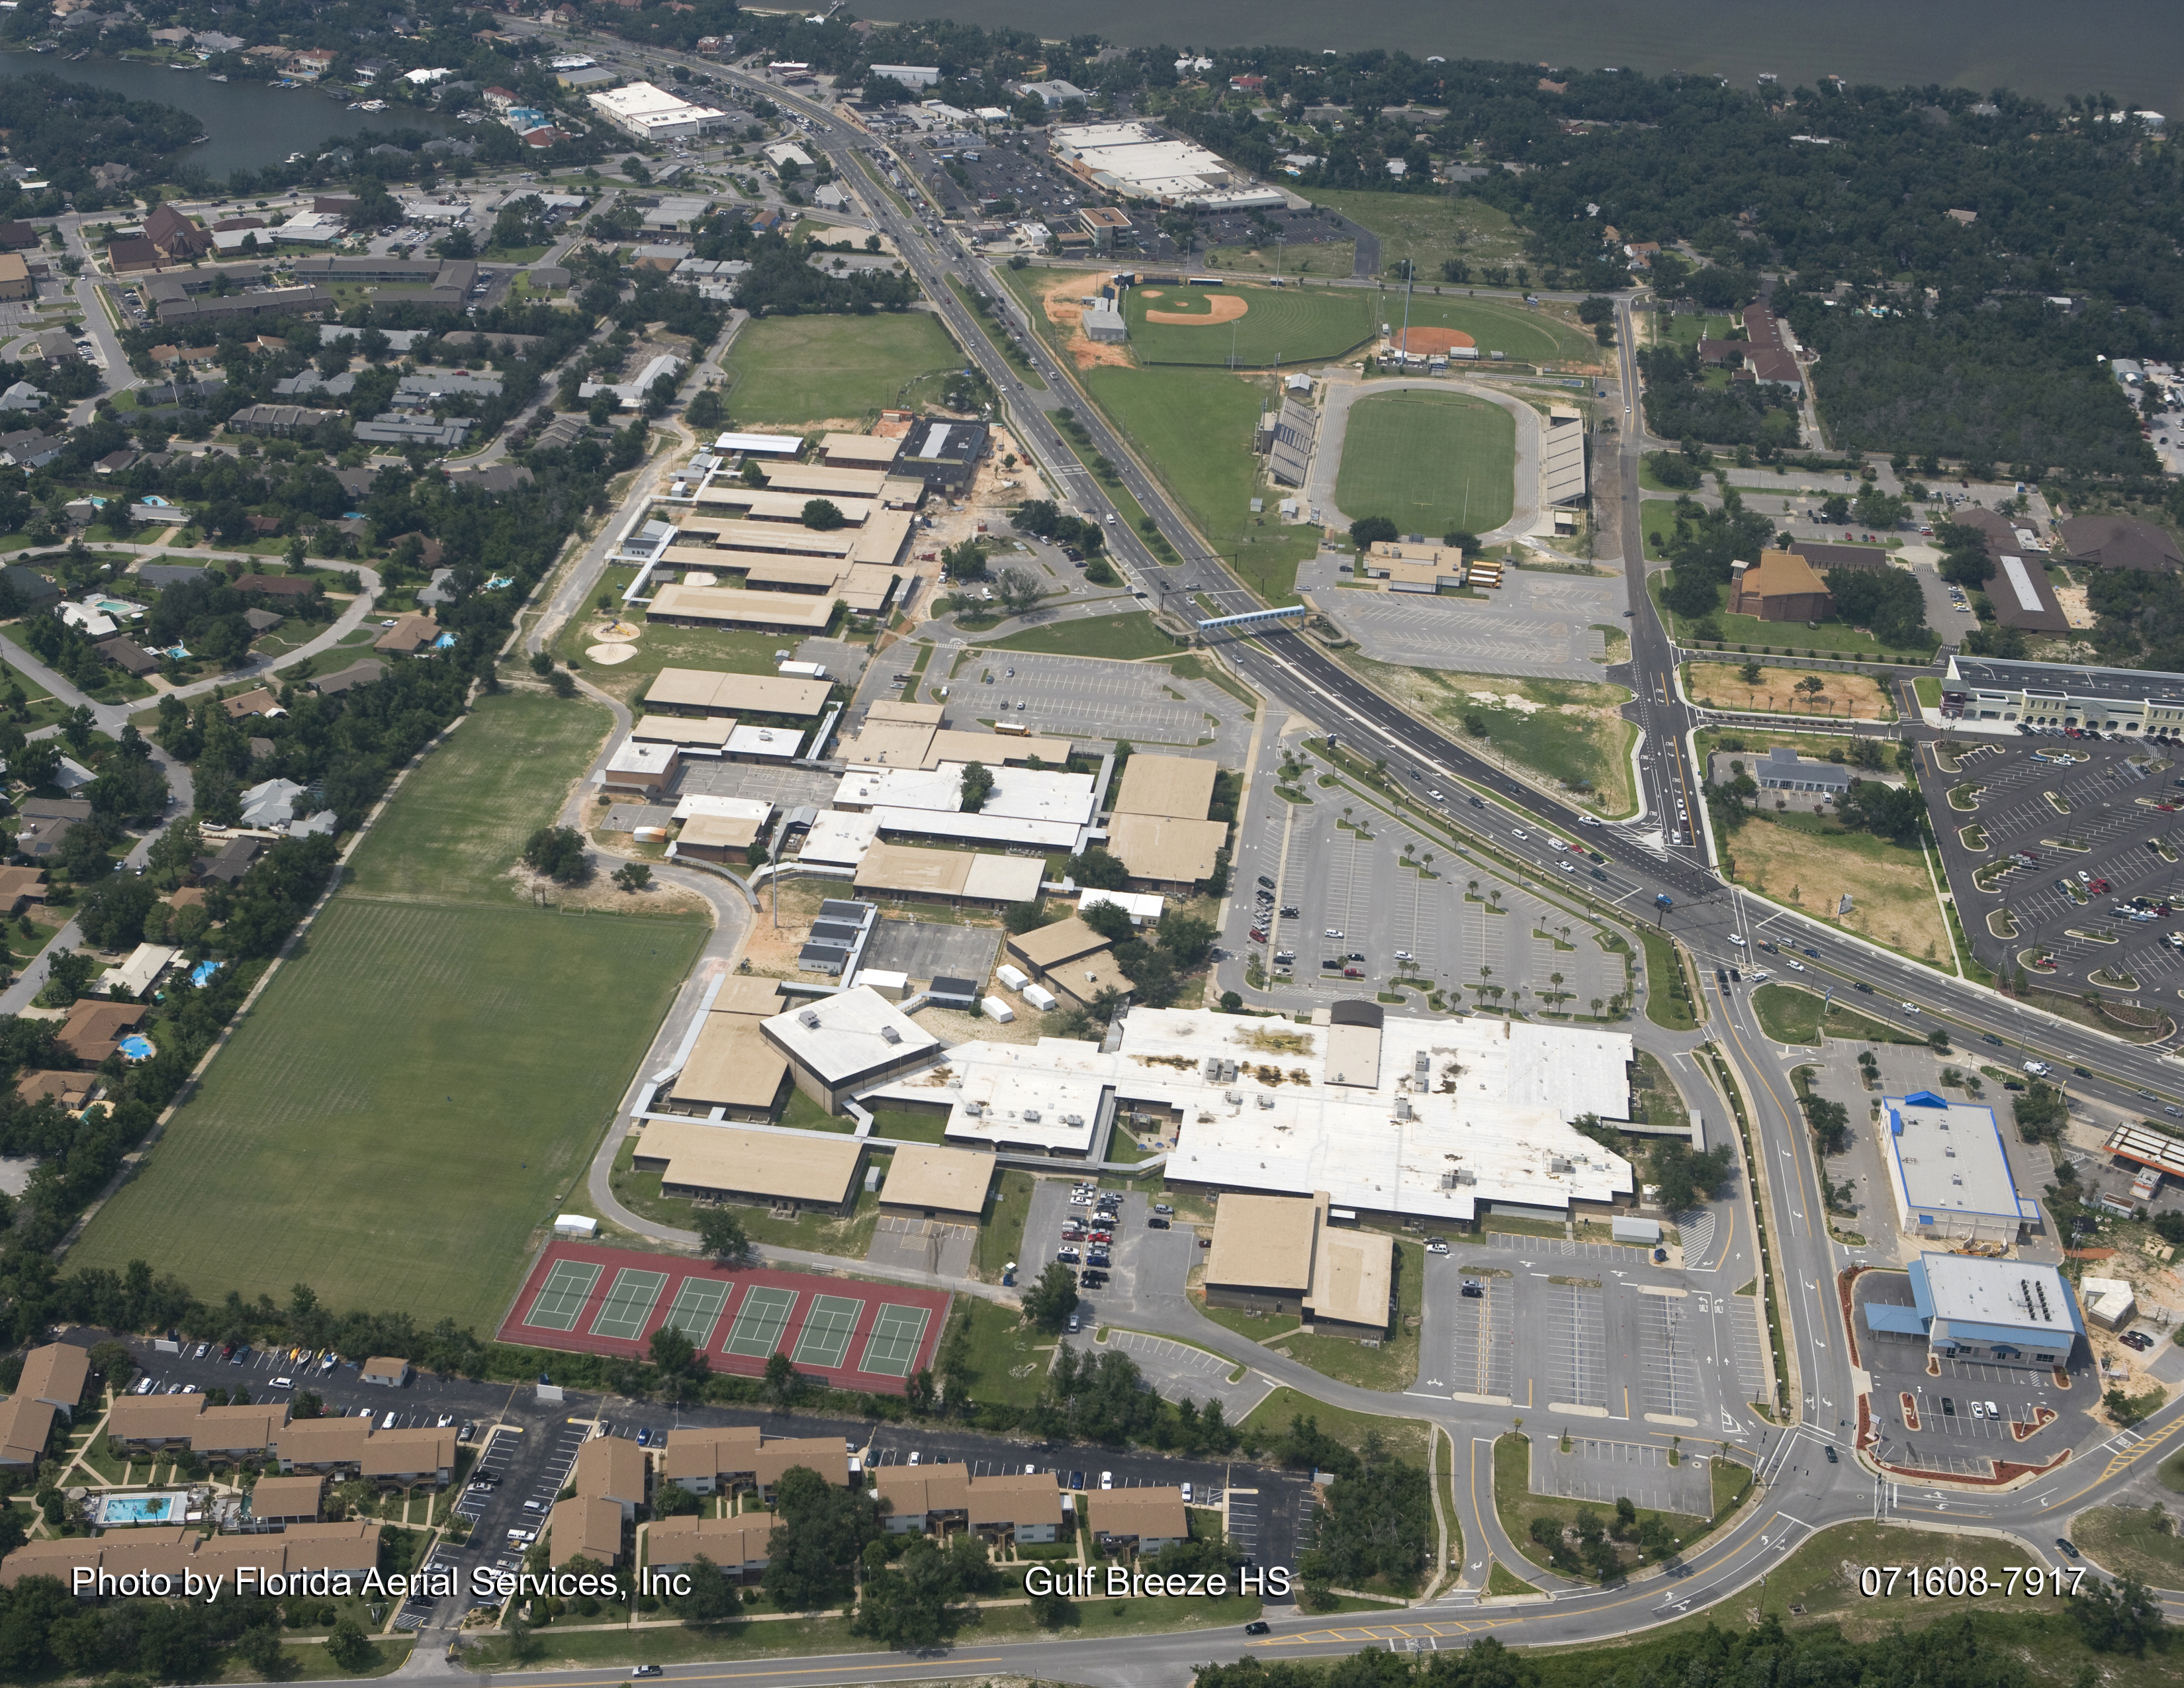 Gulf Breeze High School Aerial